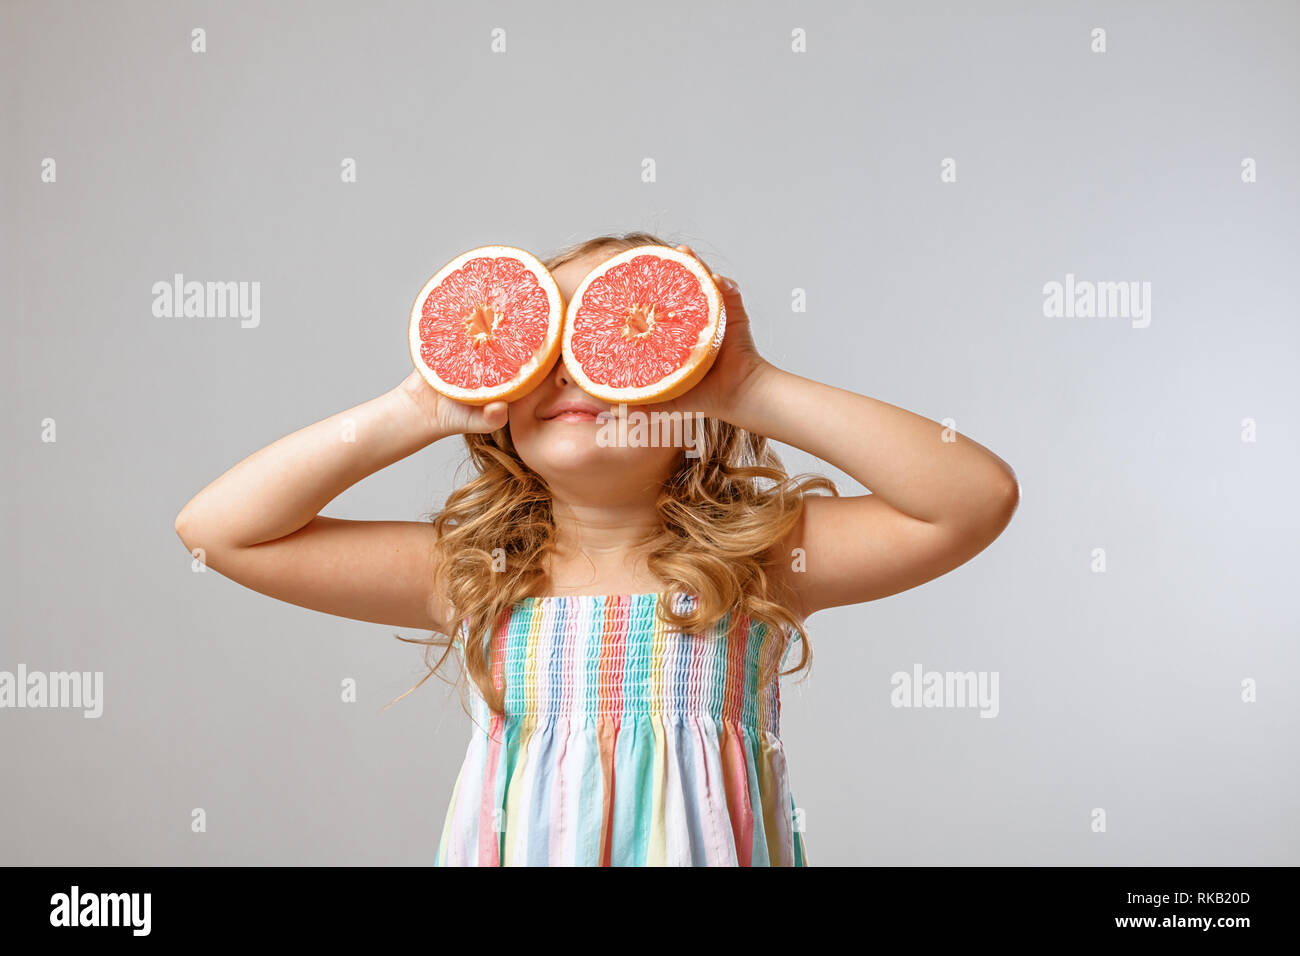 Cheerful little girl child is having fun and substitutes halves of grapefruit instead of eyes. Gray background, studio Stock Photo